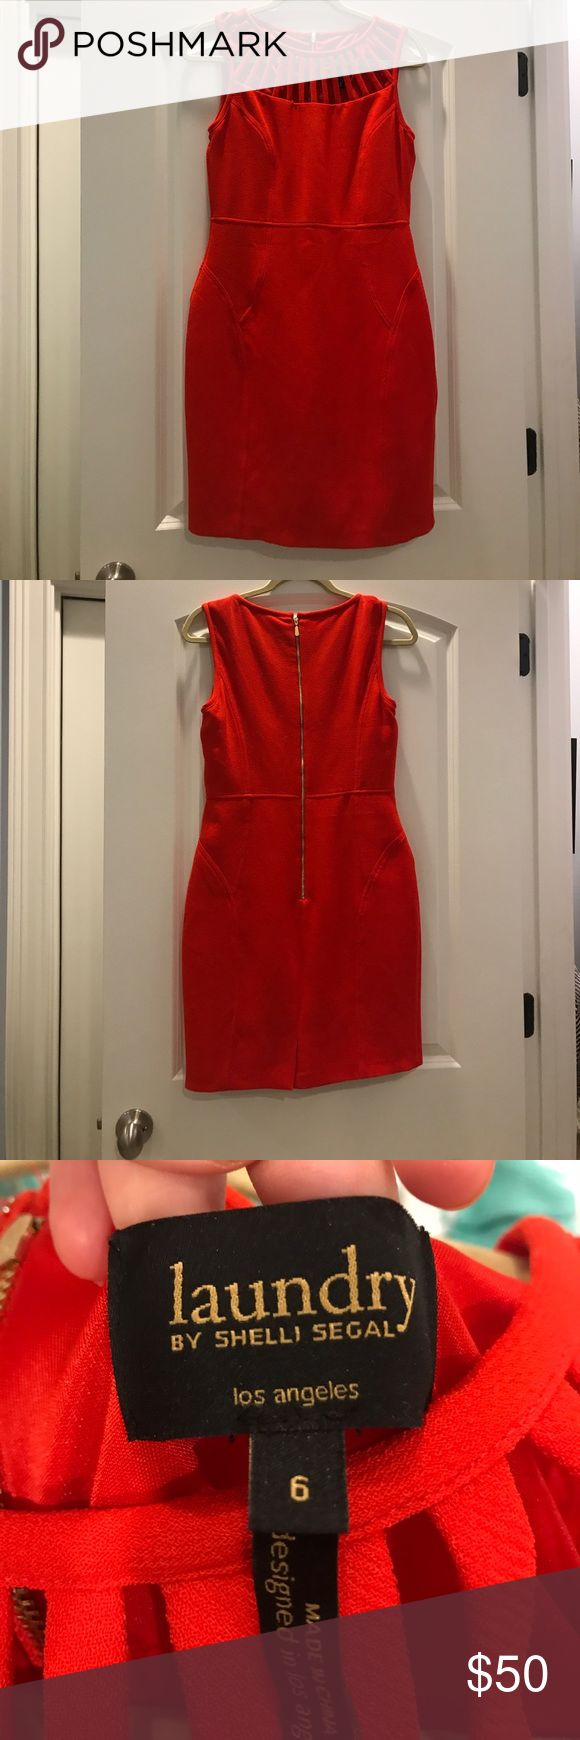 Red body-con dress! Never been worn was going to wear it to my homecoming but decided not to go! Super cute for work with a blazer or a night out! Its super flattering and shows off all the right curves! Laundry by Shelli Segal Dresses Prom